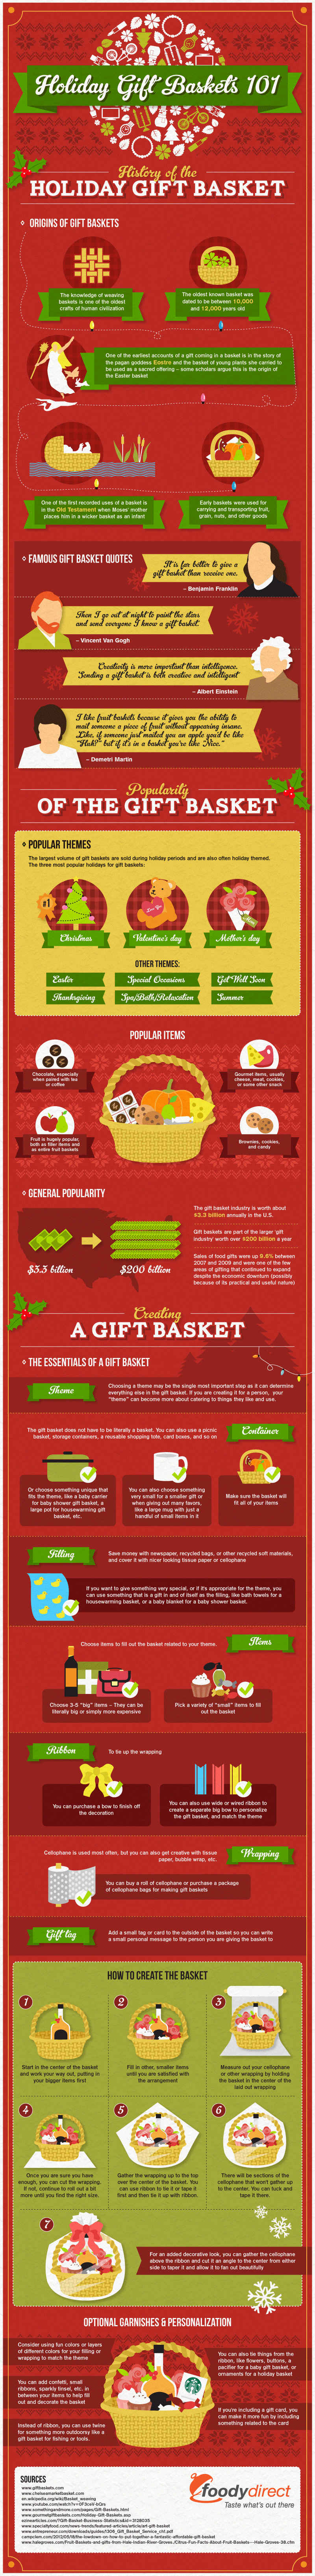 Weaving Baskets 101-Infographic